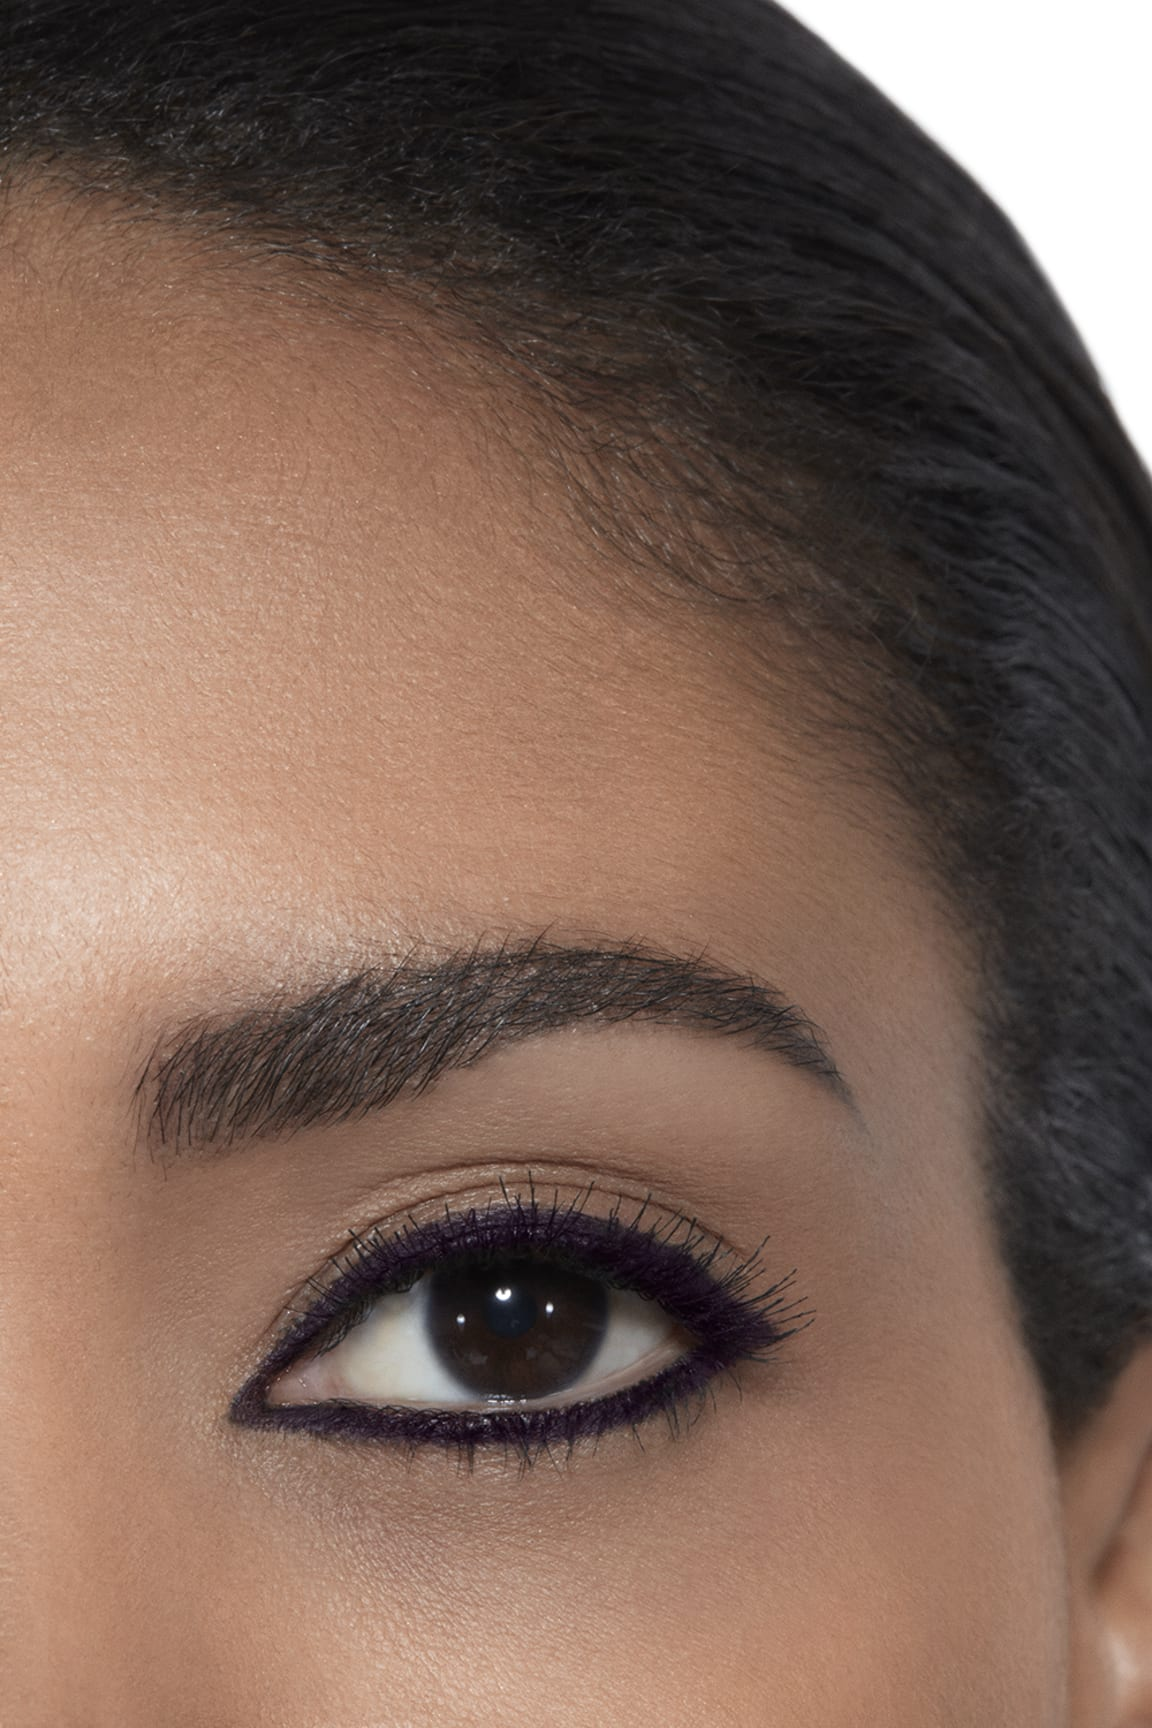 Application makeup visual 2 - STYLO YEUX WATERPROOF 83 - CASSIS